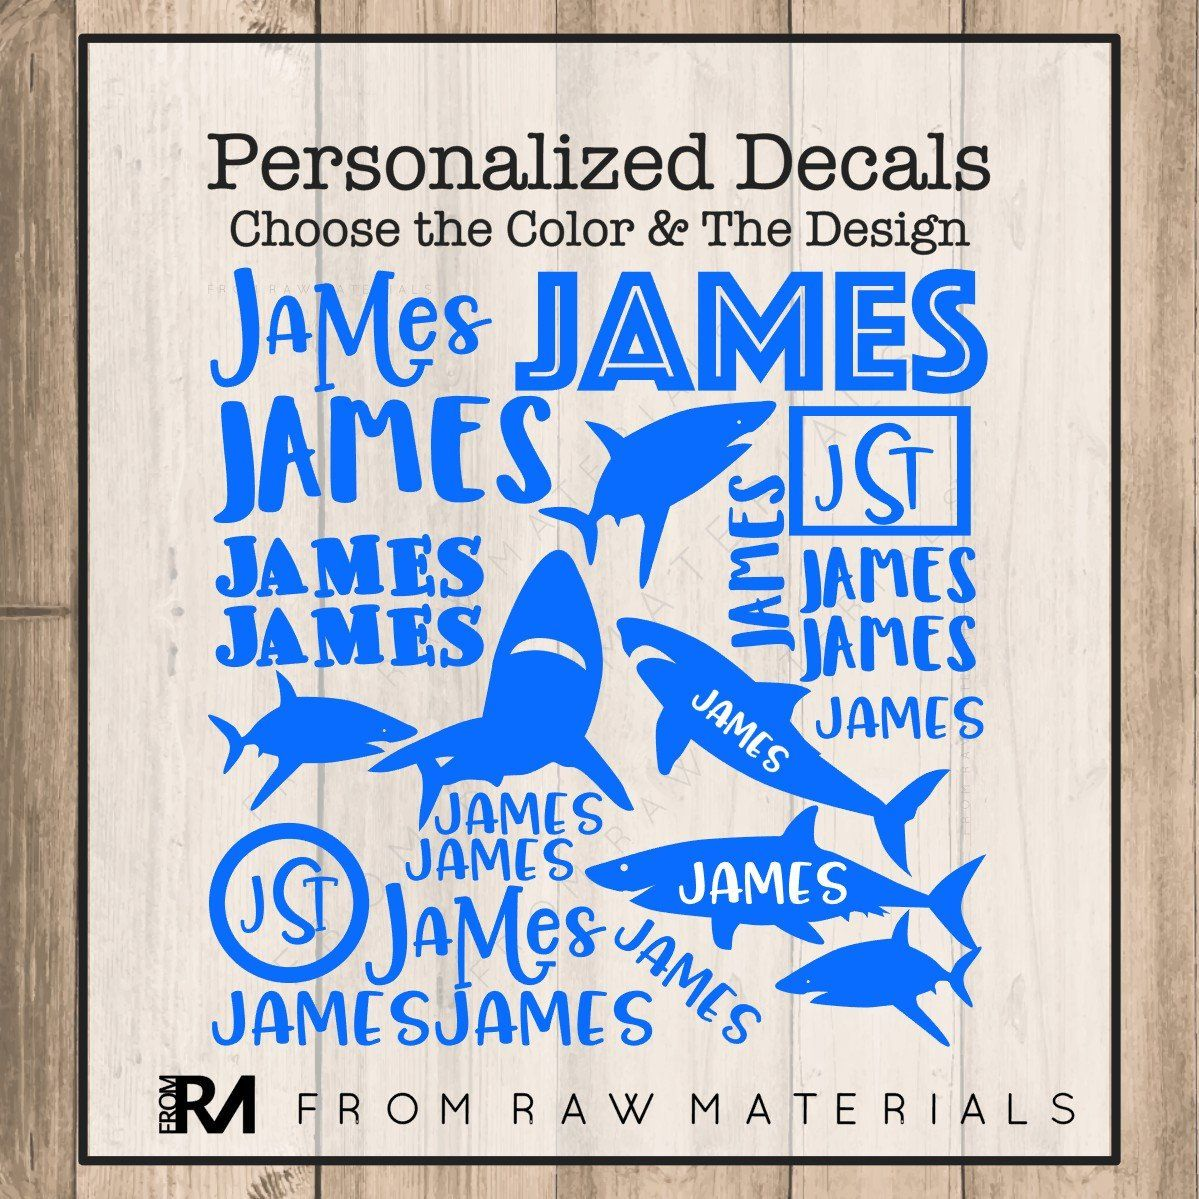 Sharks name decal sheet yeti decal name stickers vinyl decal back to school name labels custom name stickers custom decals